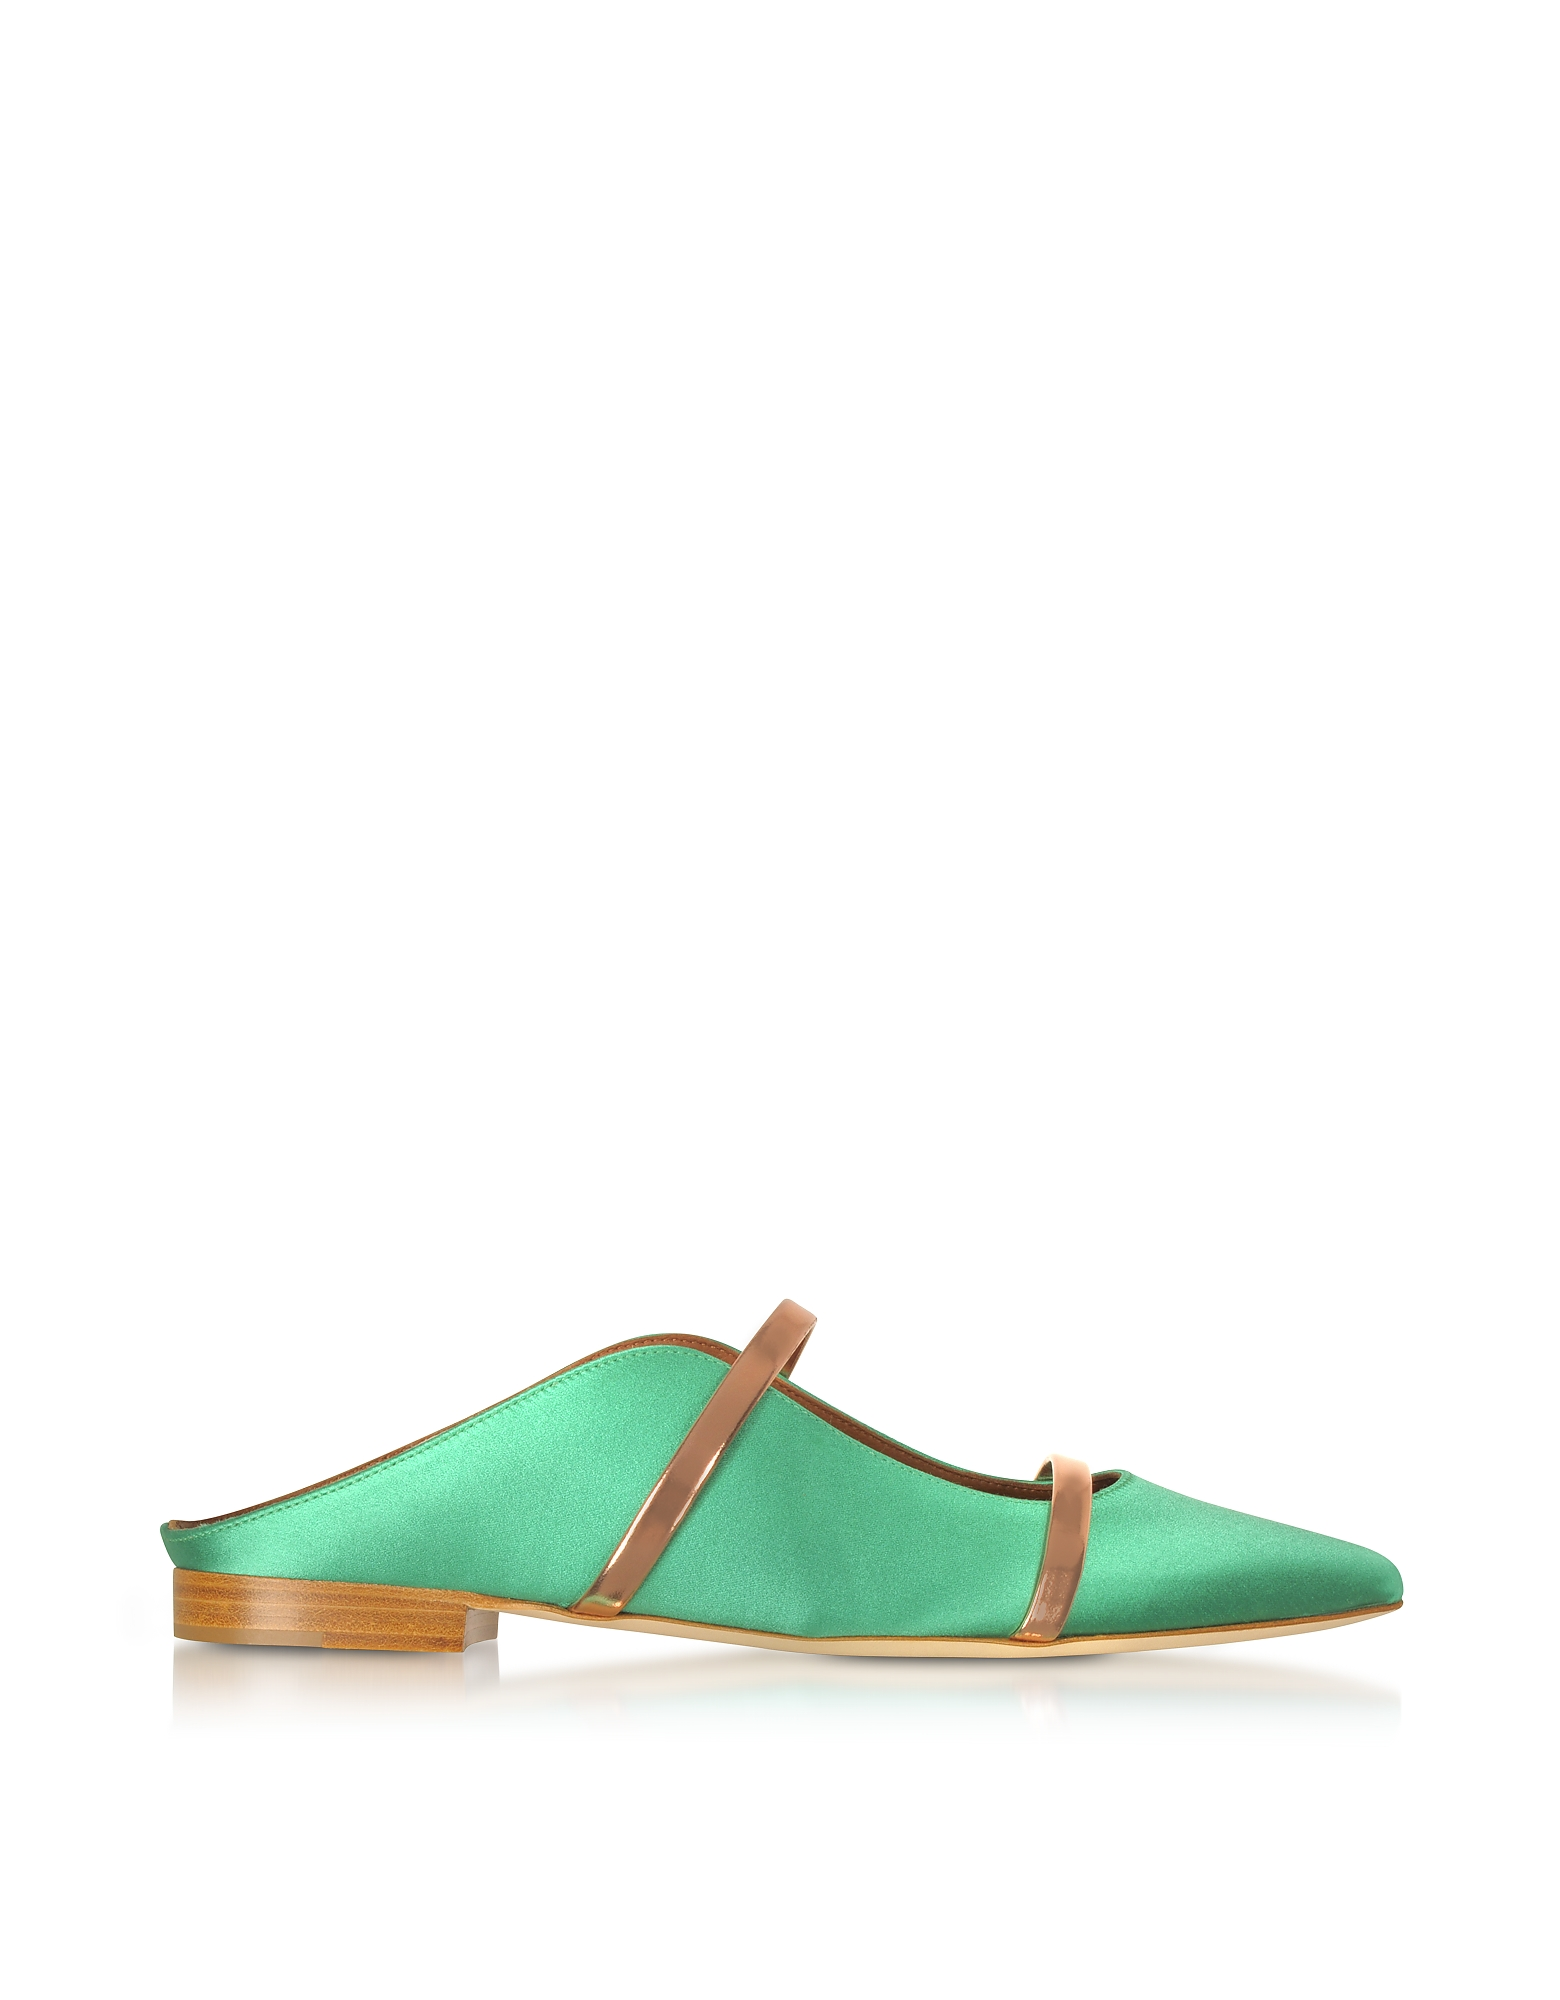 Malone Souliers Shoes, Maureen Emerald Green Satin and Rose Gold Nappa Leather Flat Mules